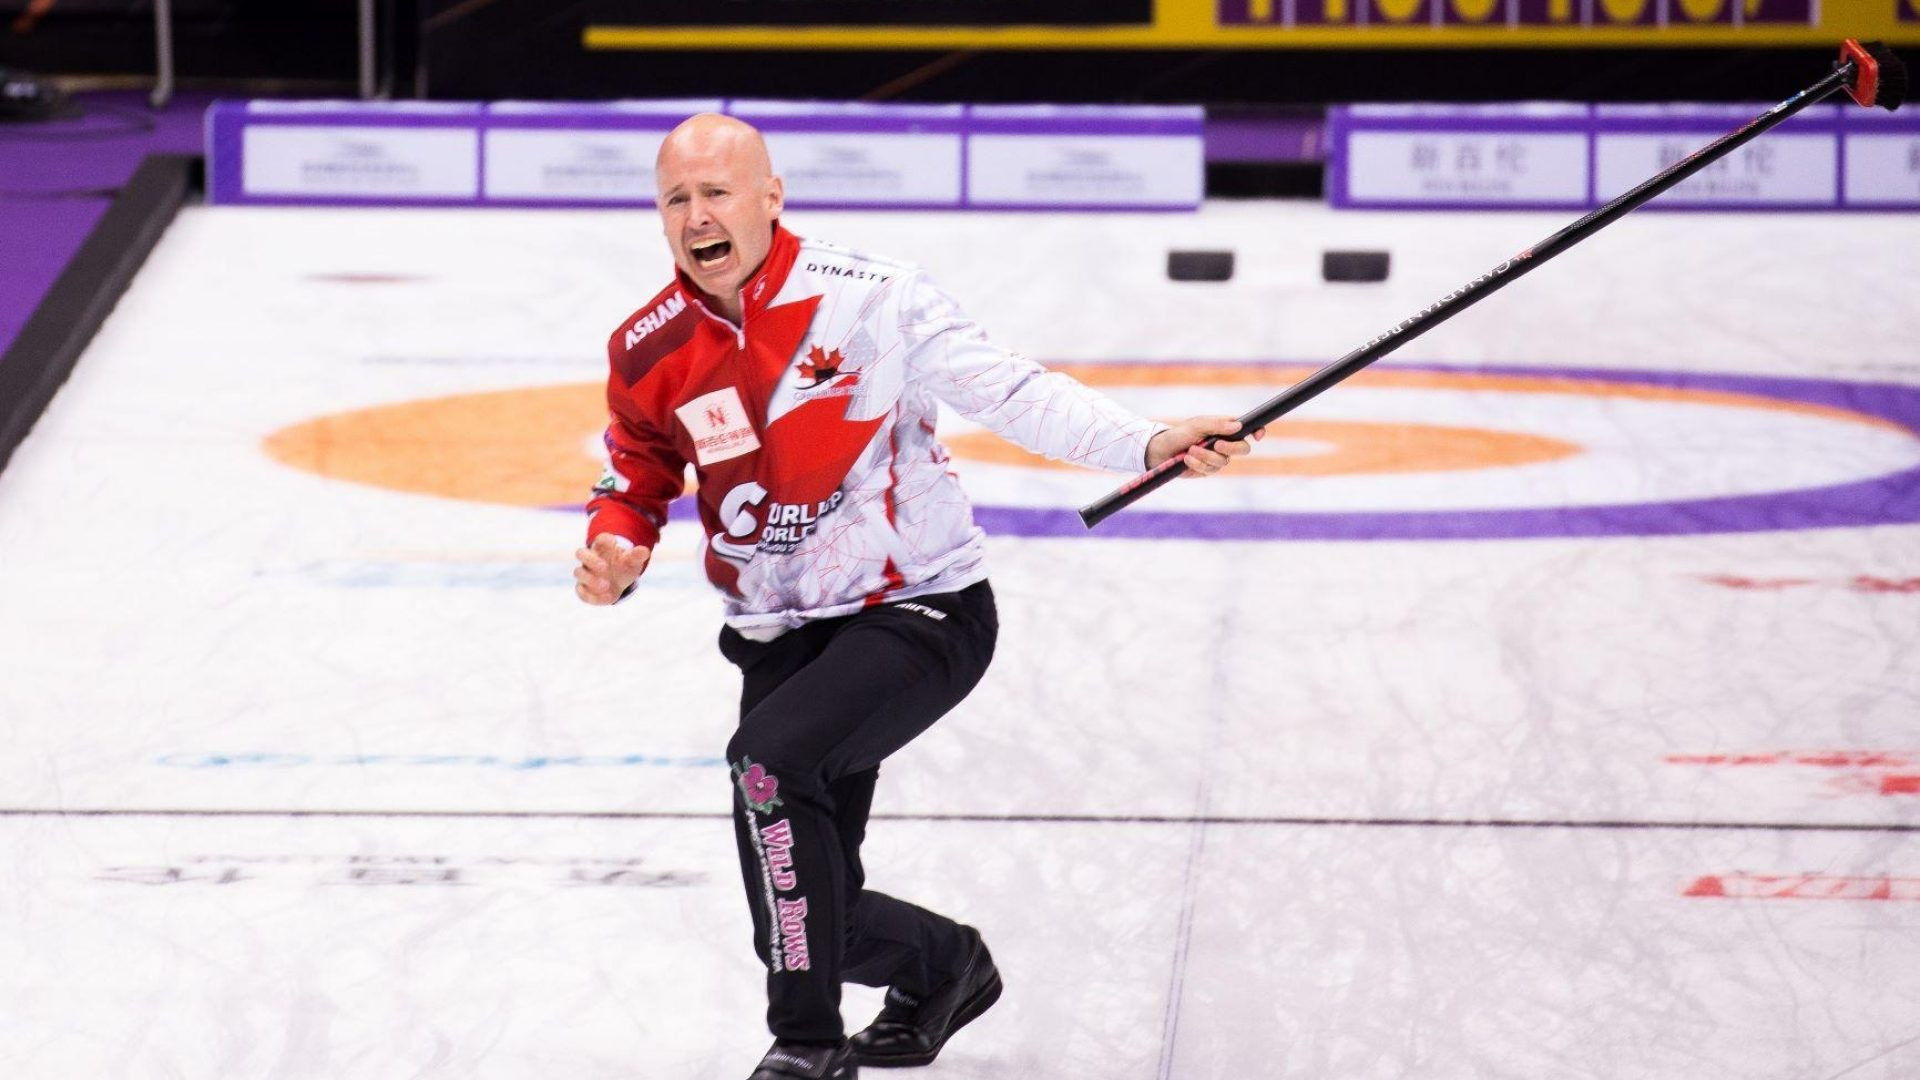 Kevin Koe starred for Canada as they preserved their unbeaten record ©Curling World Cup